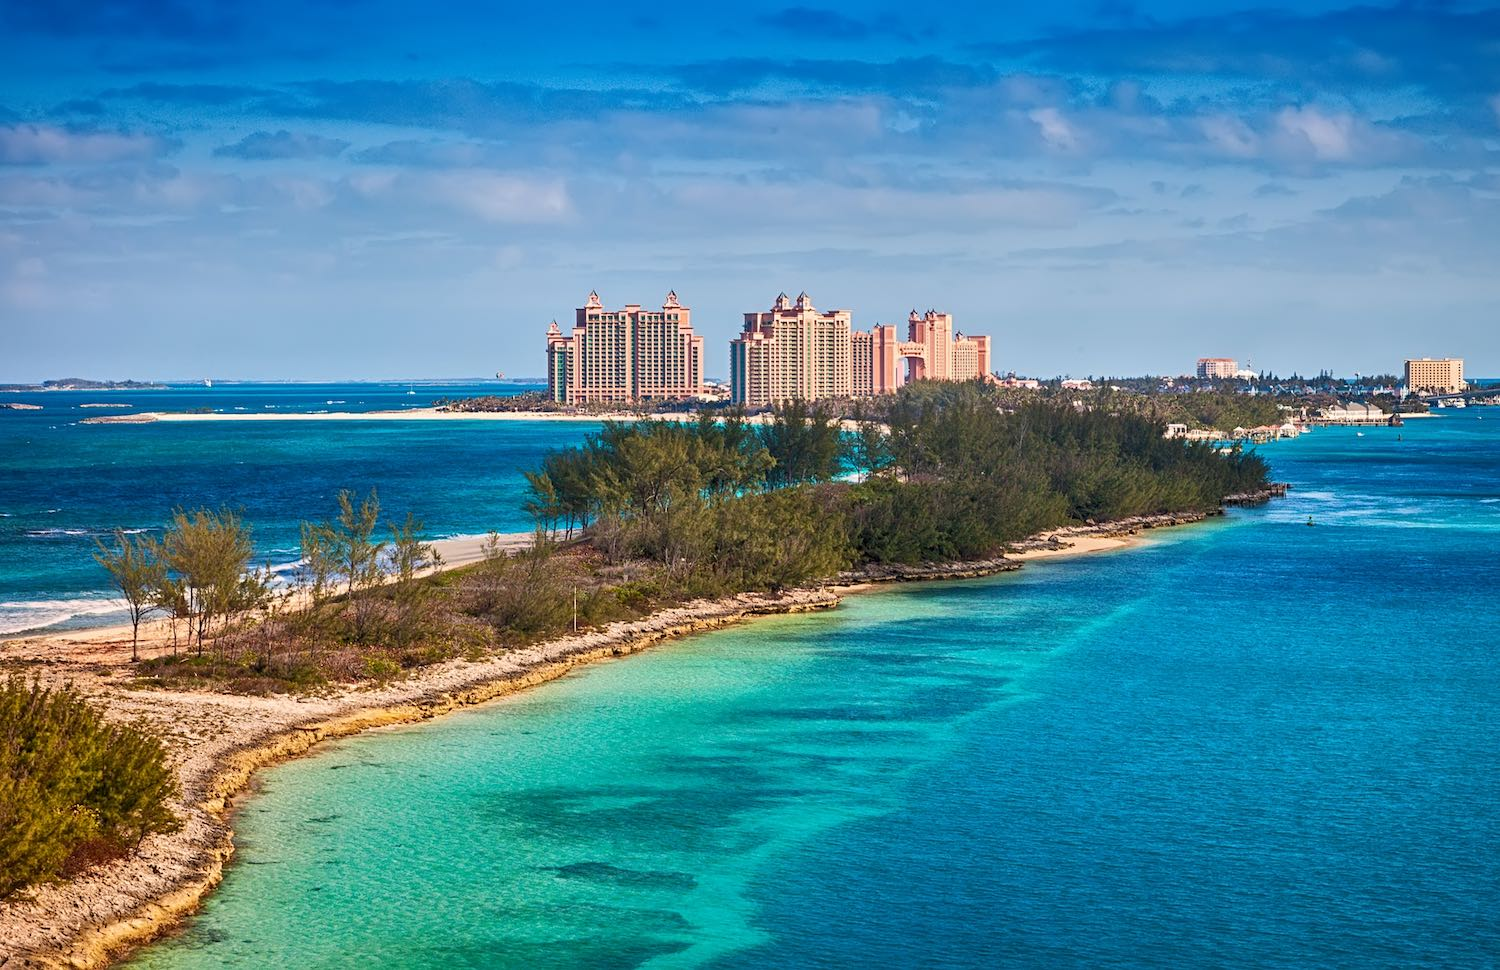 The Bahamas - Where is hot in January